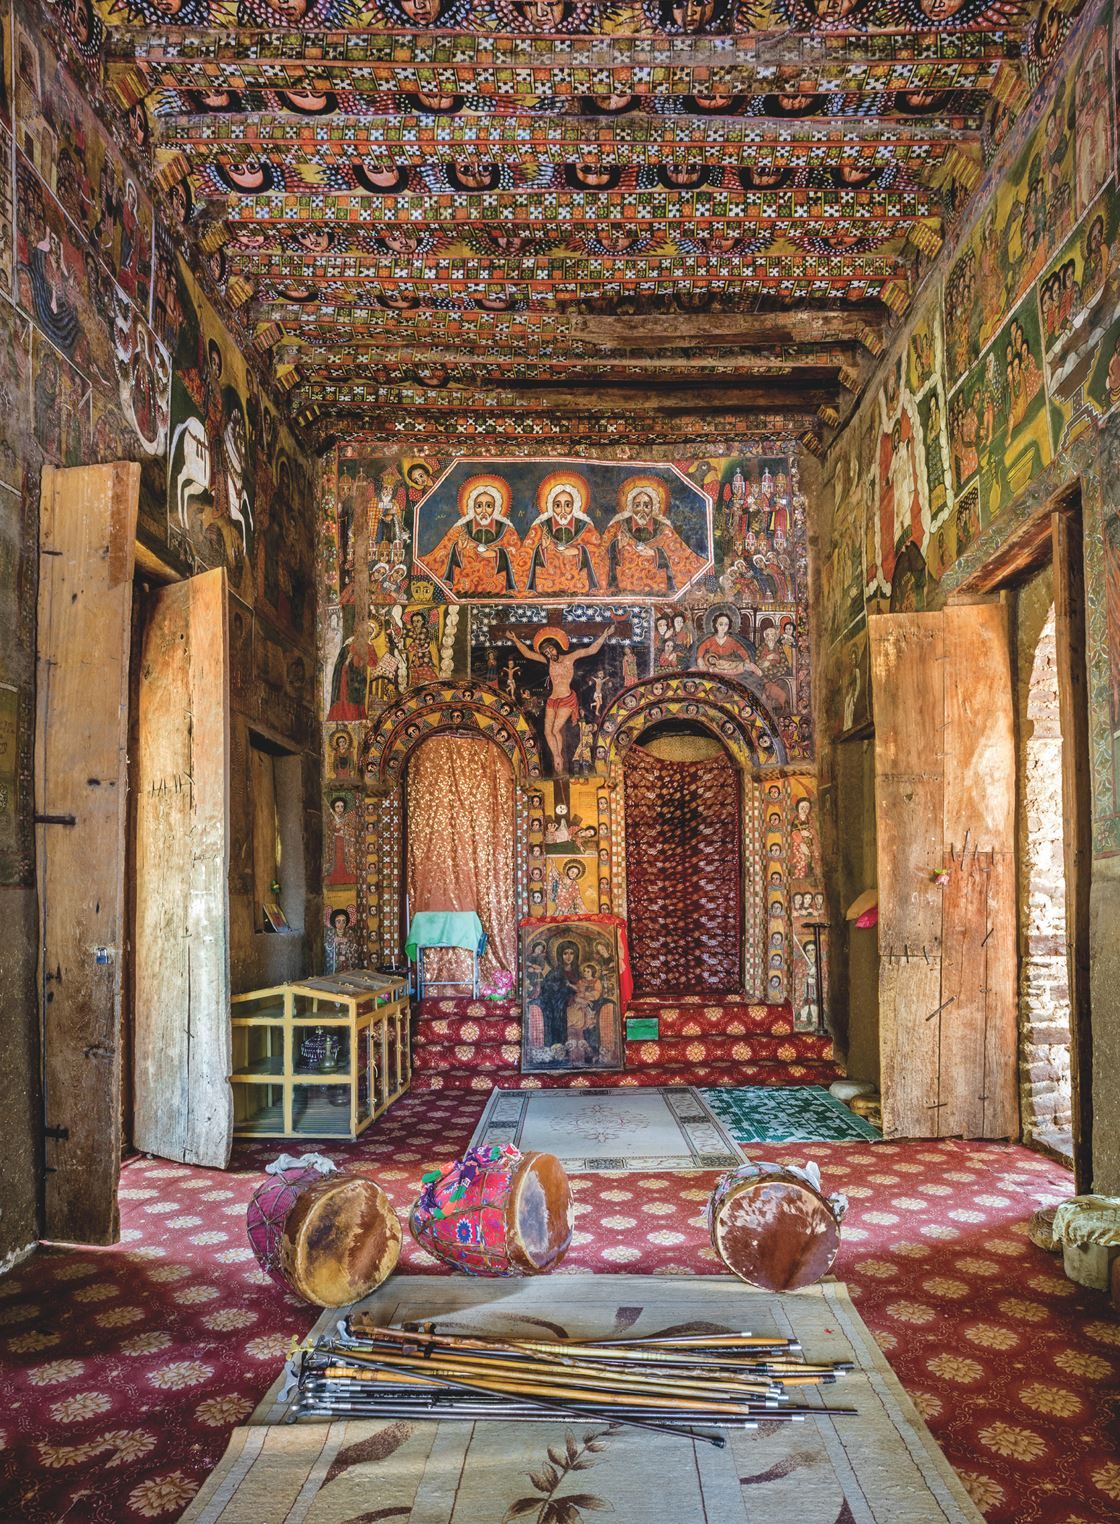 Photo Gallery Ethiopia S Amazing Rock Churches And The People Who Worship There Ethiopia History Of Ethiopia Ethiopia Travel